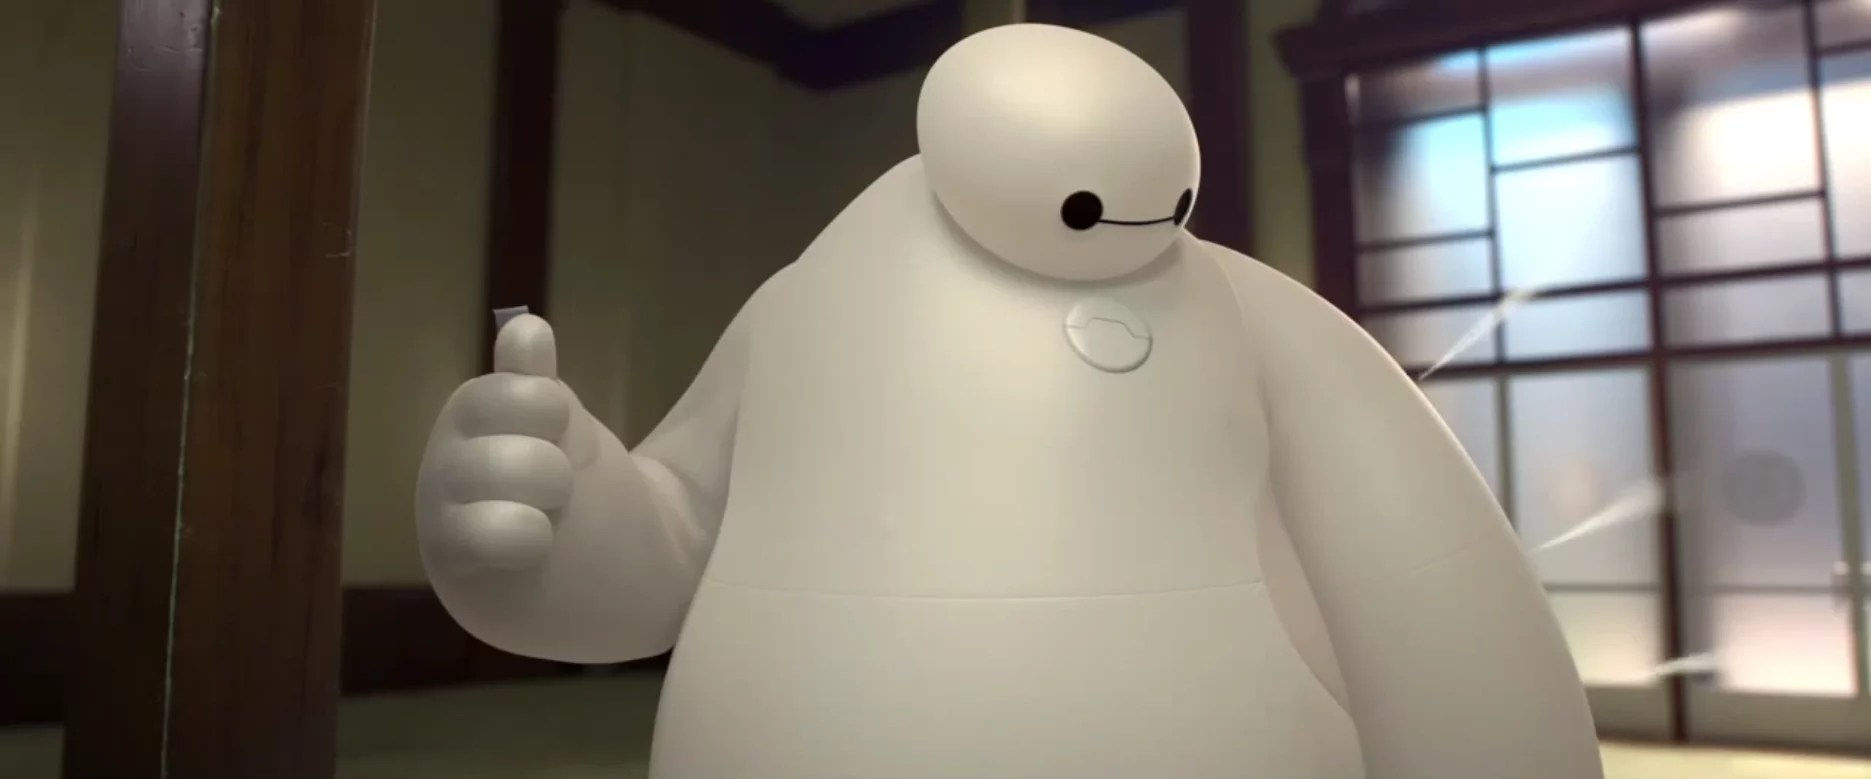 Full Length Big Hero 6 Trailer Shows Glimpse Of San